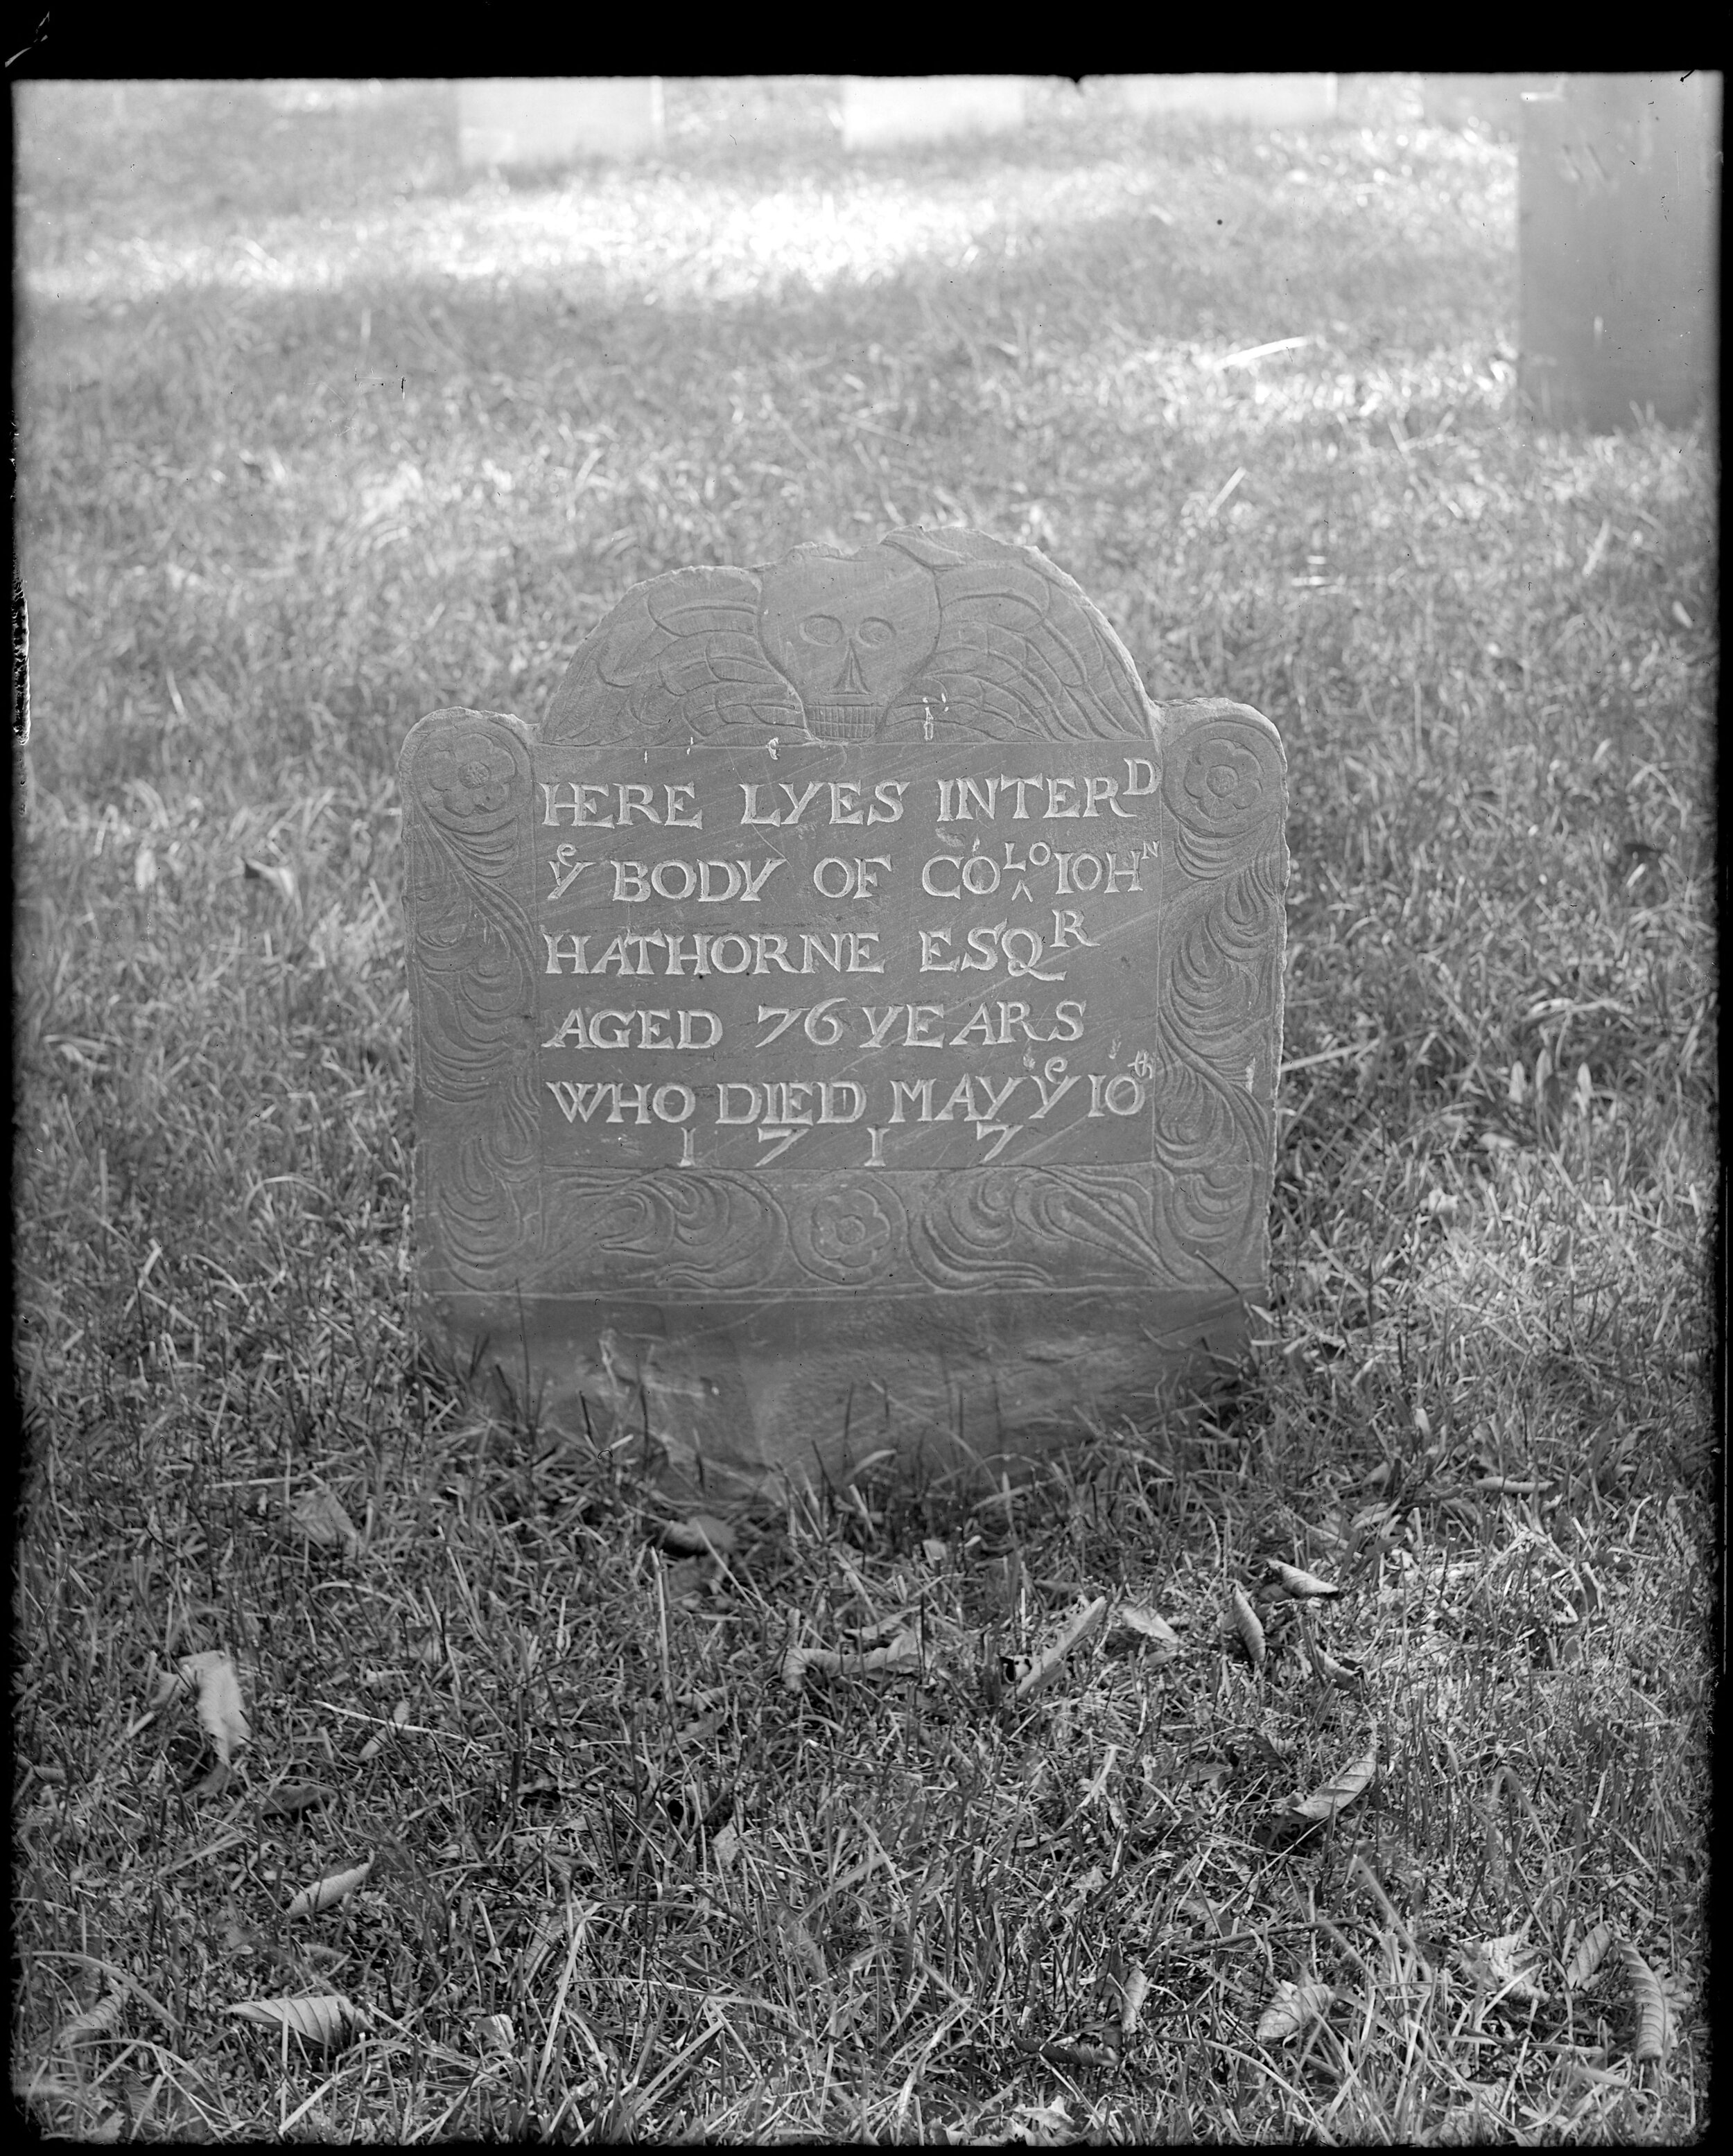 """JOHN HATHORNE   John Hathorne was a judge during the Salem Witchcraft Trials of 1692. His ancestor, Nathaniel Hawthorne, added the """"w"""" to his name to distance himself from the role Justice Hathorne played in the trials. John Hathorne's stone was carved by John Holliman and is now encased in granite.   Frank Cousins, (Monuments, Charter Street, monuments, burying ground, gravestones, Colonel John Hathorne], [1864-1914], Frank Cousins Collection of Glass Plate Negatives, Courtesy of Phillips Library, Peabody Essex Museum, Salem, MA."""